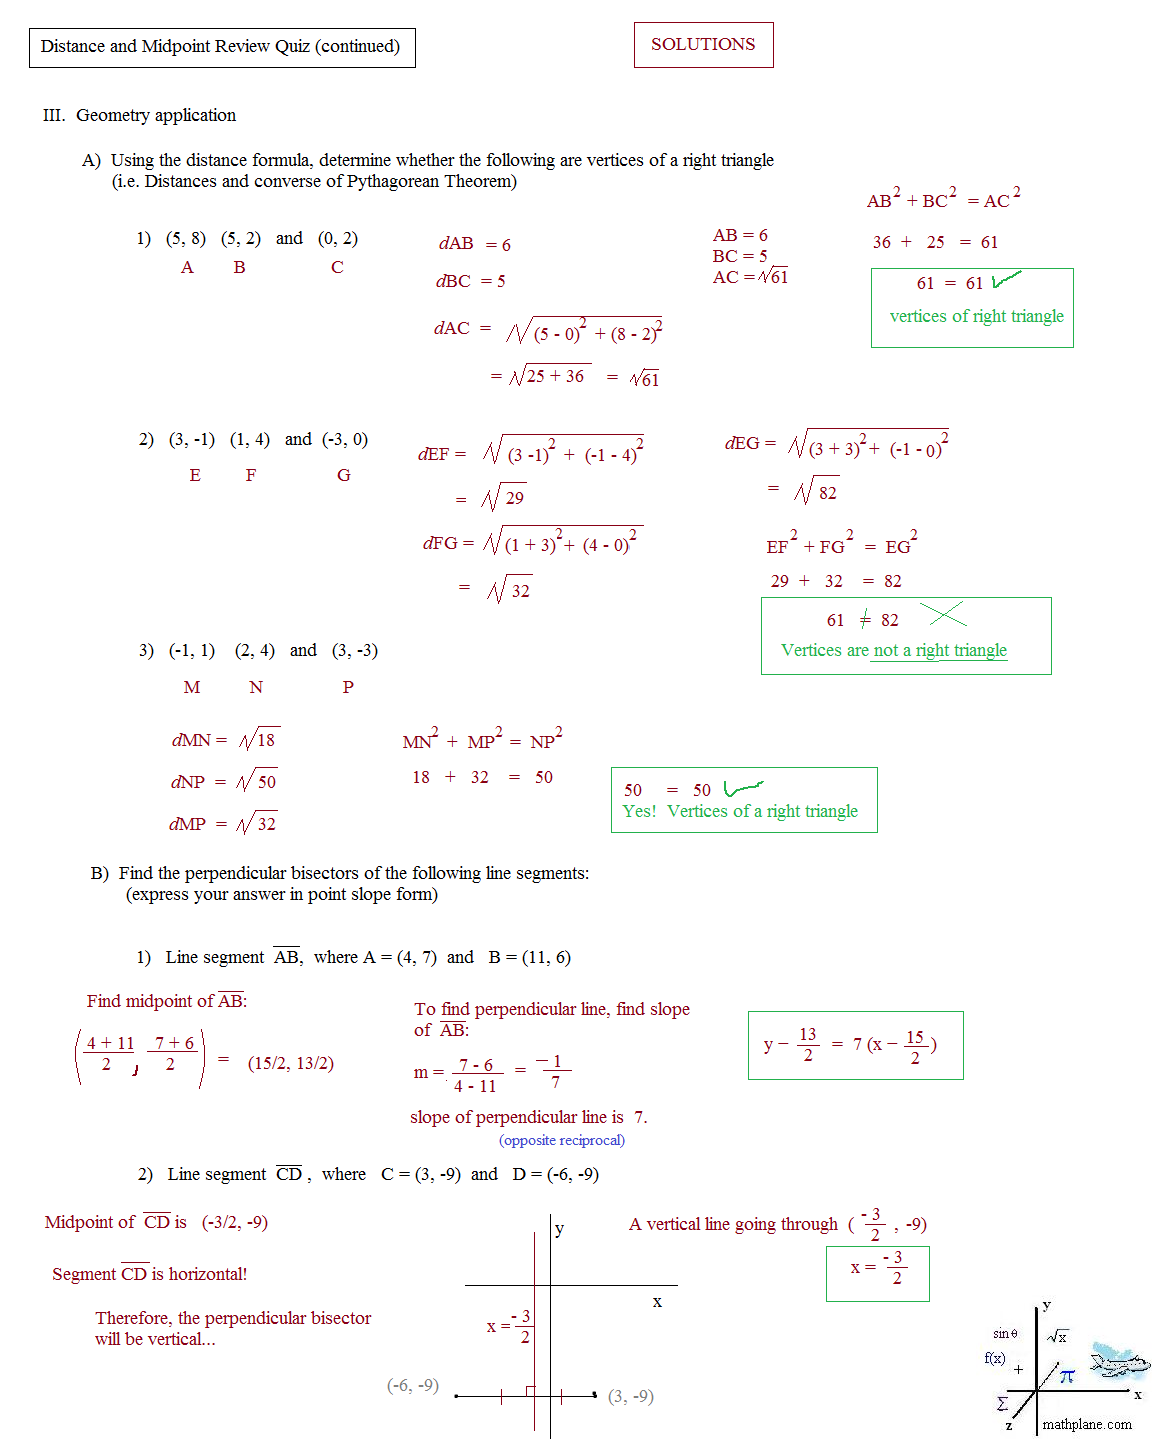 Worksheets Coordinate Geometry Distance Formula Worksheet math plane midpoint and distance geometry review quiz 2 solutions